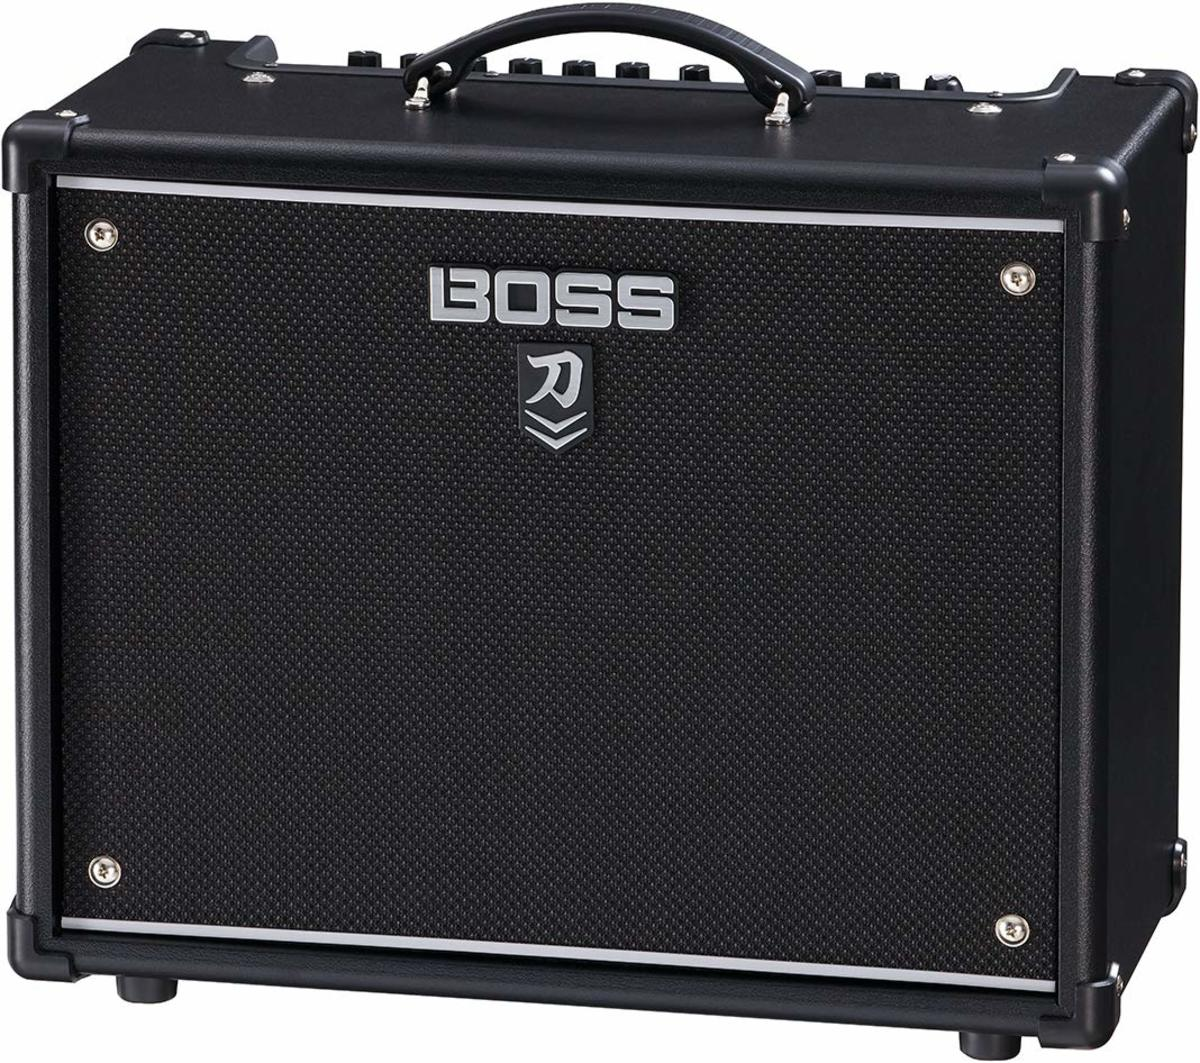 5 Best Guitar Amps Under $300 for 2020